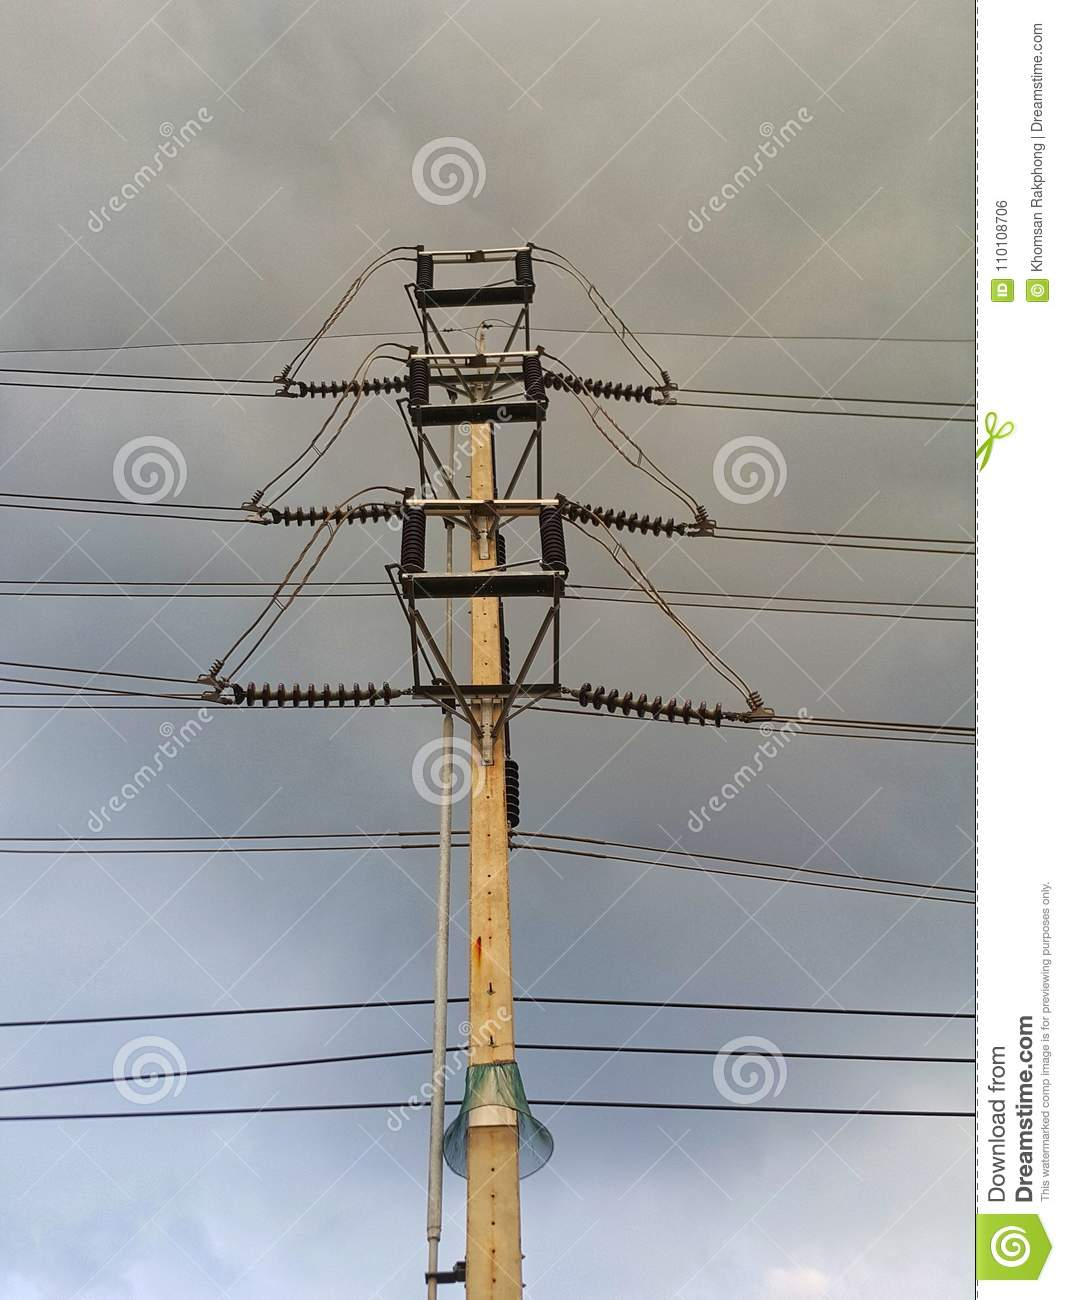 High voltage tower and power cable